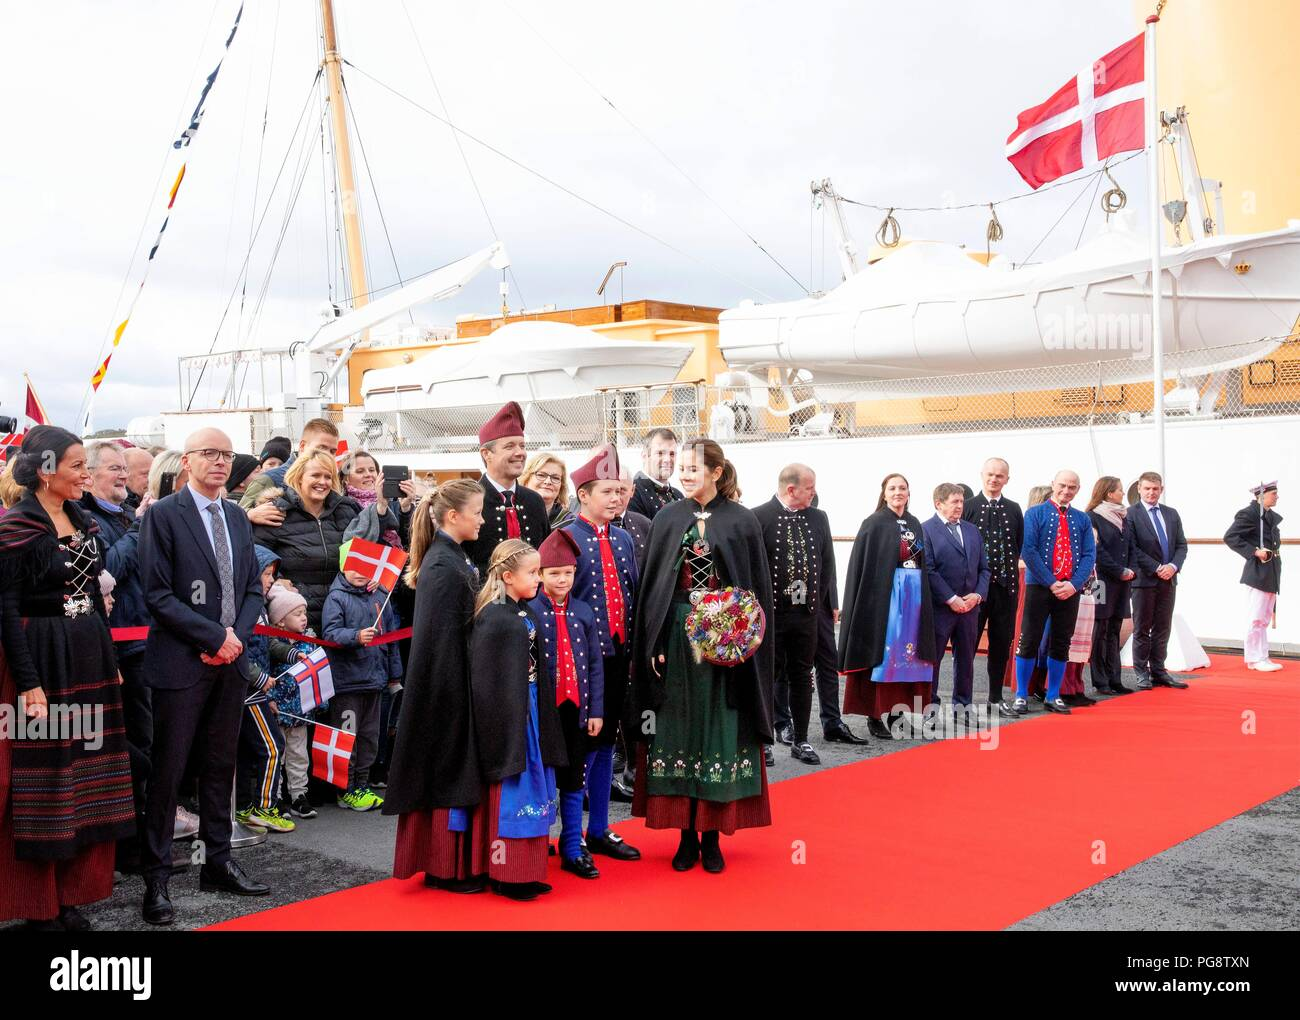 Glyvrar, Faroe Islands, Denmark. 25th Aug, 2018. Crown Prince Frederik, Crown Princess Mary, Prince Christian, Princess Isabella, Prince Vincent and Princess Josehpine of Denmark arrive with the The Royal Ship, HDMY Dannebrog at Bakkafrost in Glyvrar, on August 25, 2018, on the 3rd of the 4 days visit to the Faroe Islands Photo : Albert Nieboer/ Netherlands OUT/Point de Vue OUT | Credit: dpa/Alamy Live News - Stock Image